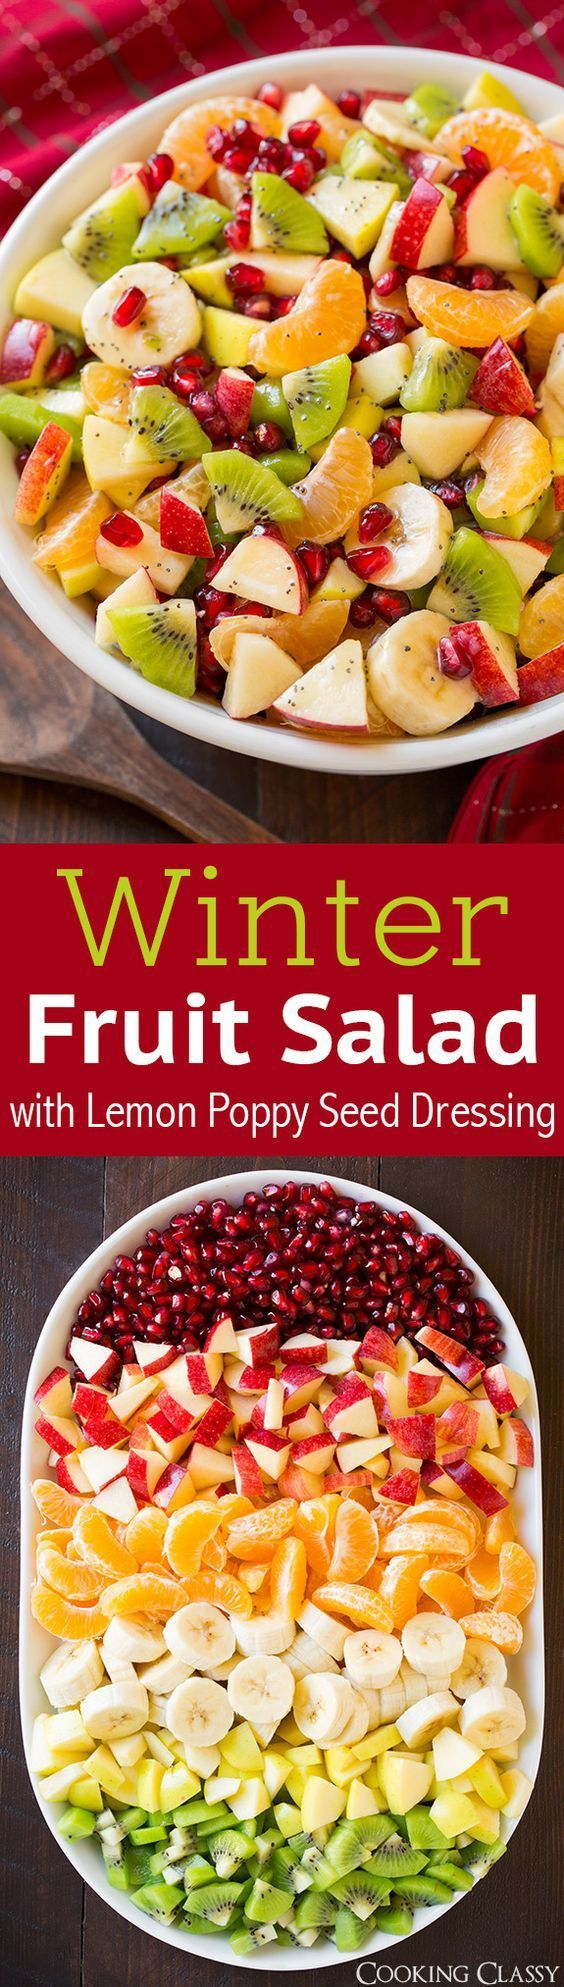 Winter Fruit Salad with Lemon Poppy Seed Dressing - SO GOOD I made it two days in a row! Perfect colors for the holidays. Everyone loved it!